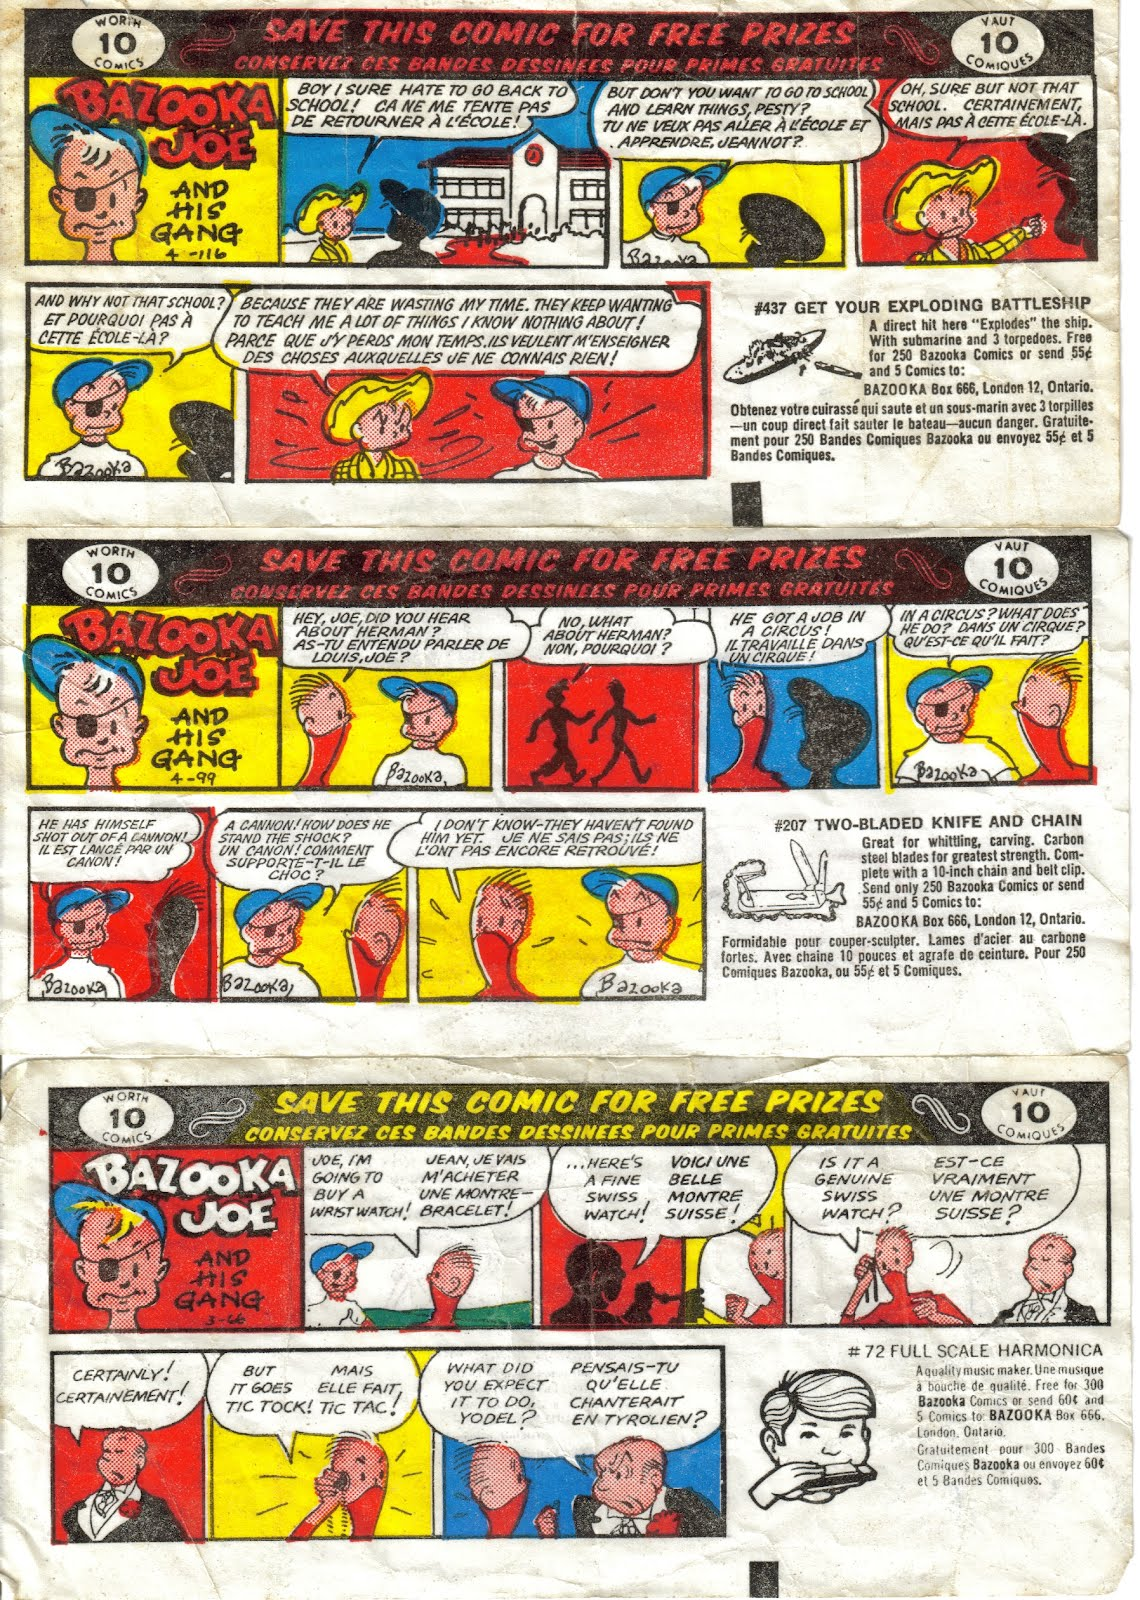 The Bubble Gum Machine The Bubble Gum Machine